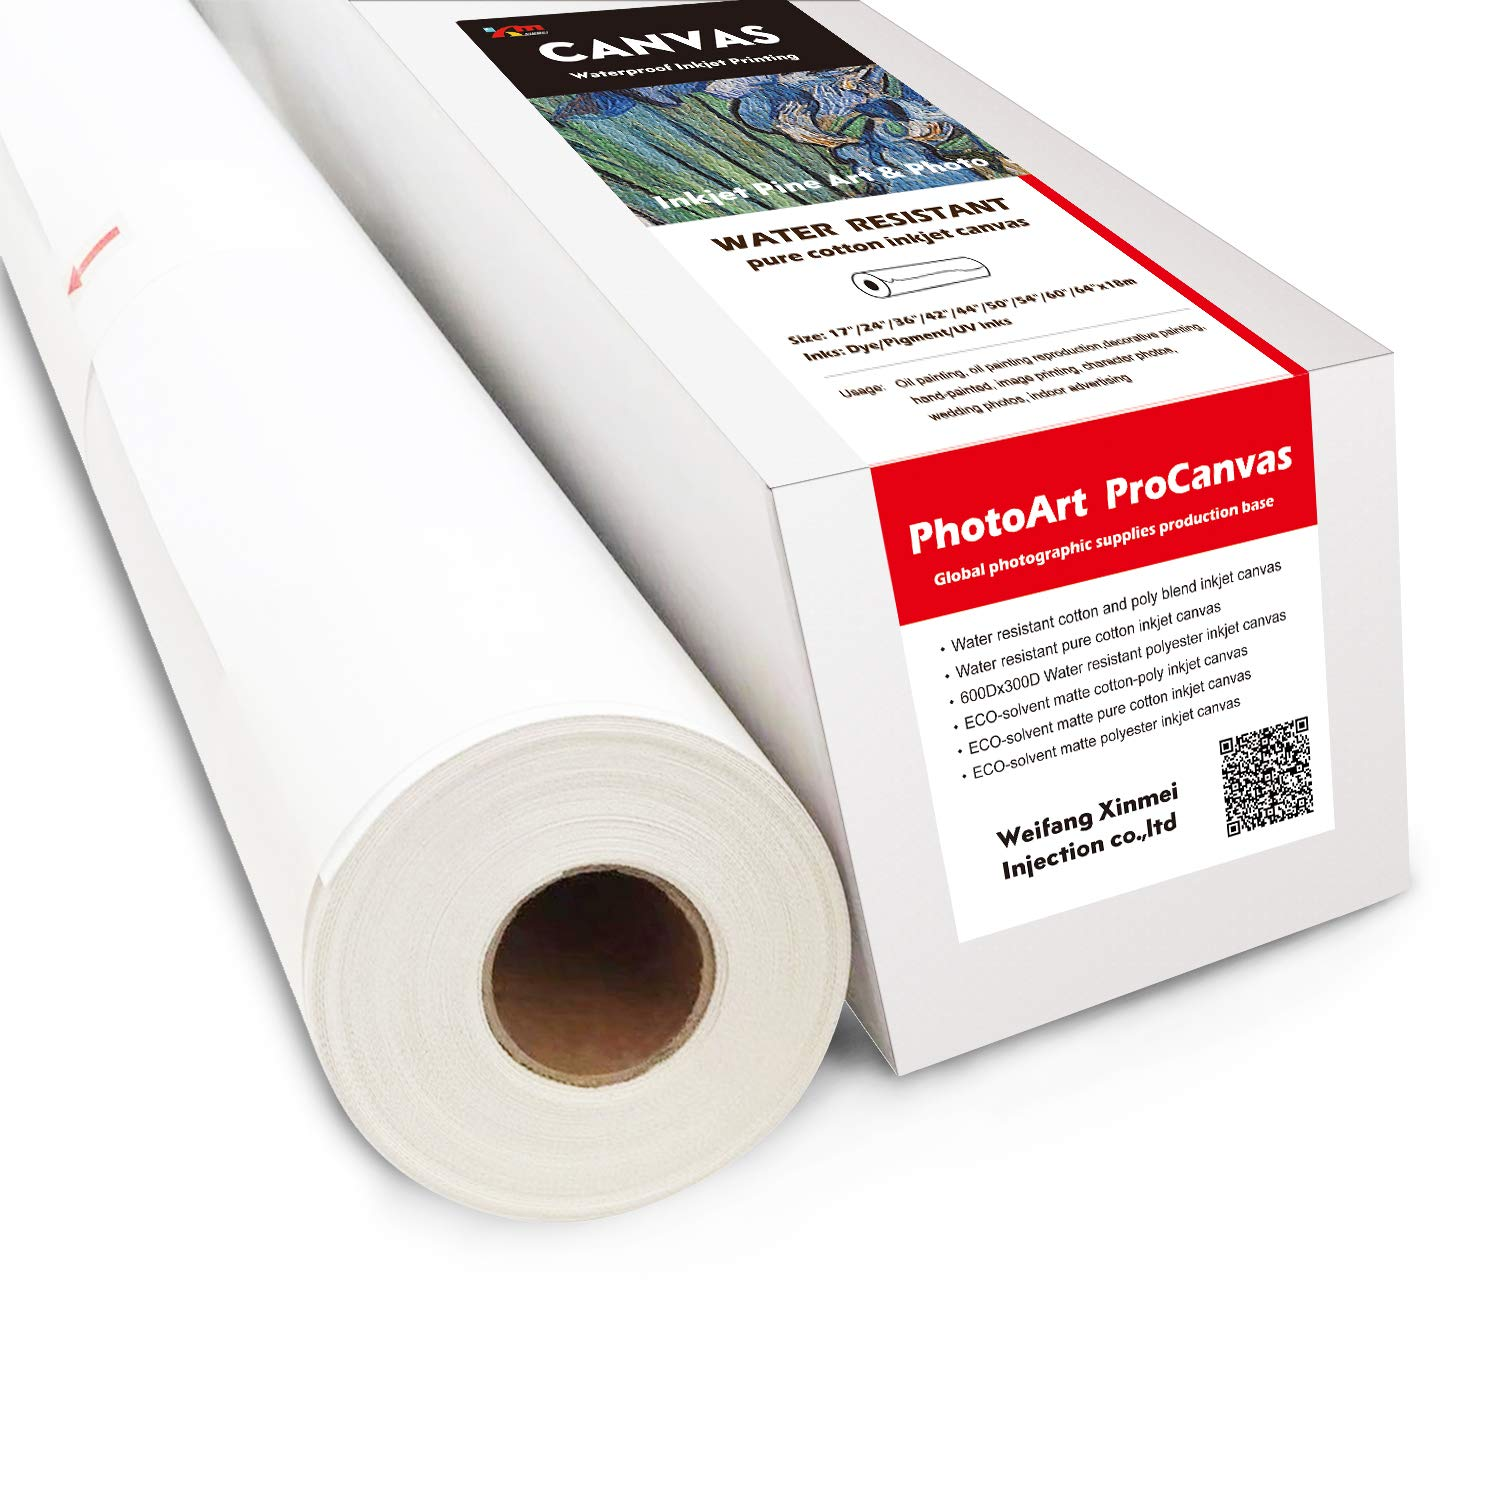 Water Resistant Pure Cotton Inkjet Canvas (60'' x 60'(Pack of 2)) by Sheepcamel